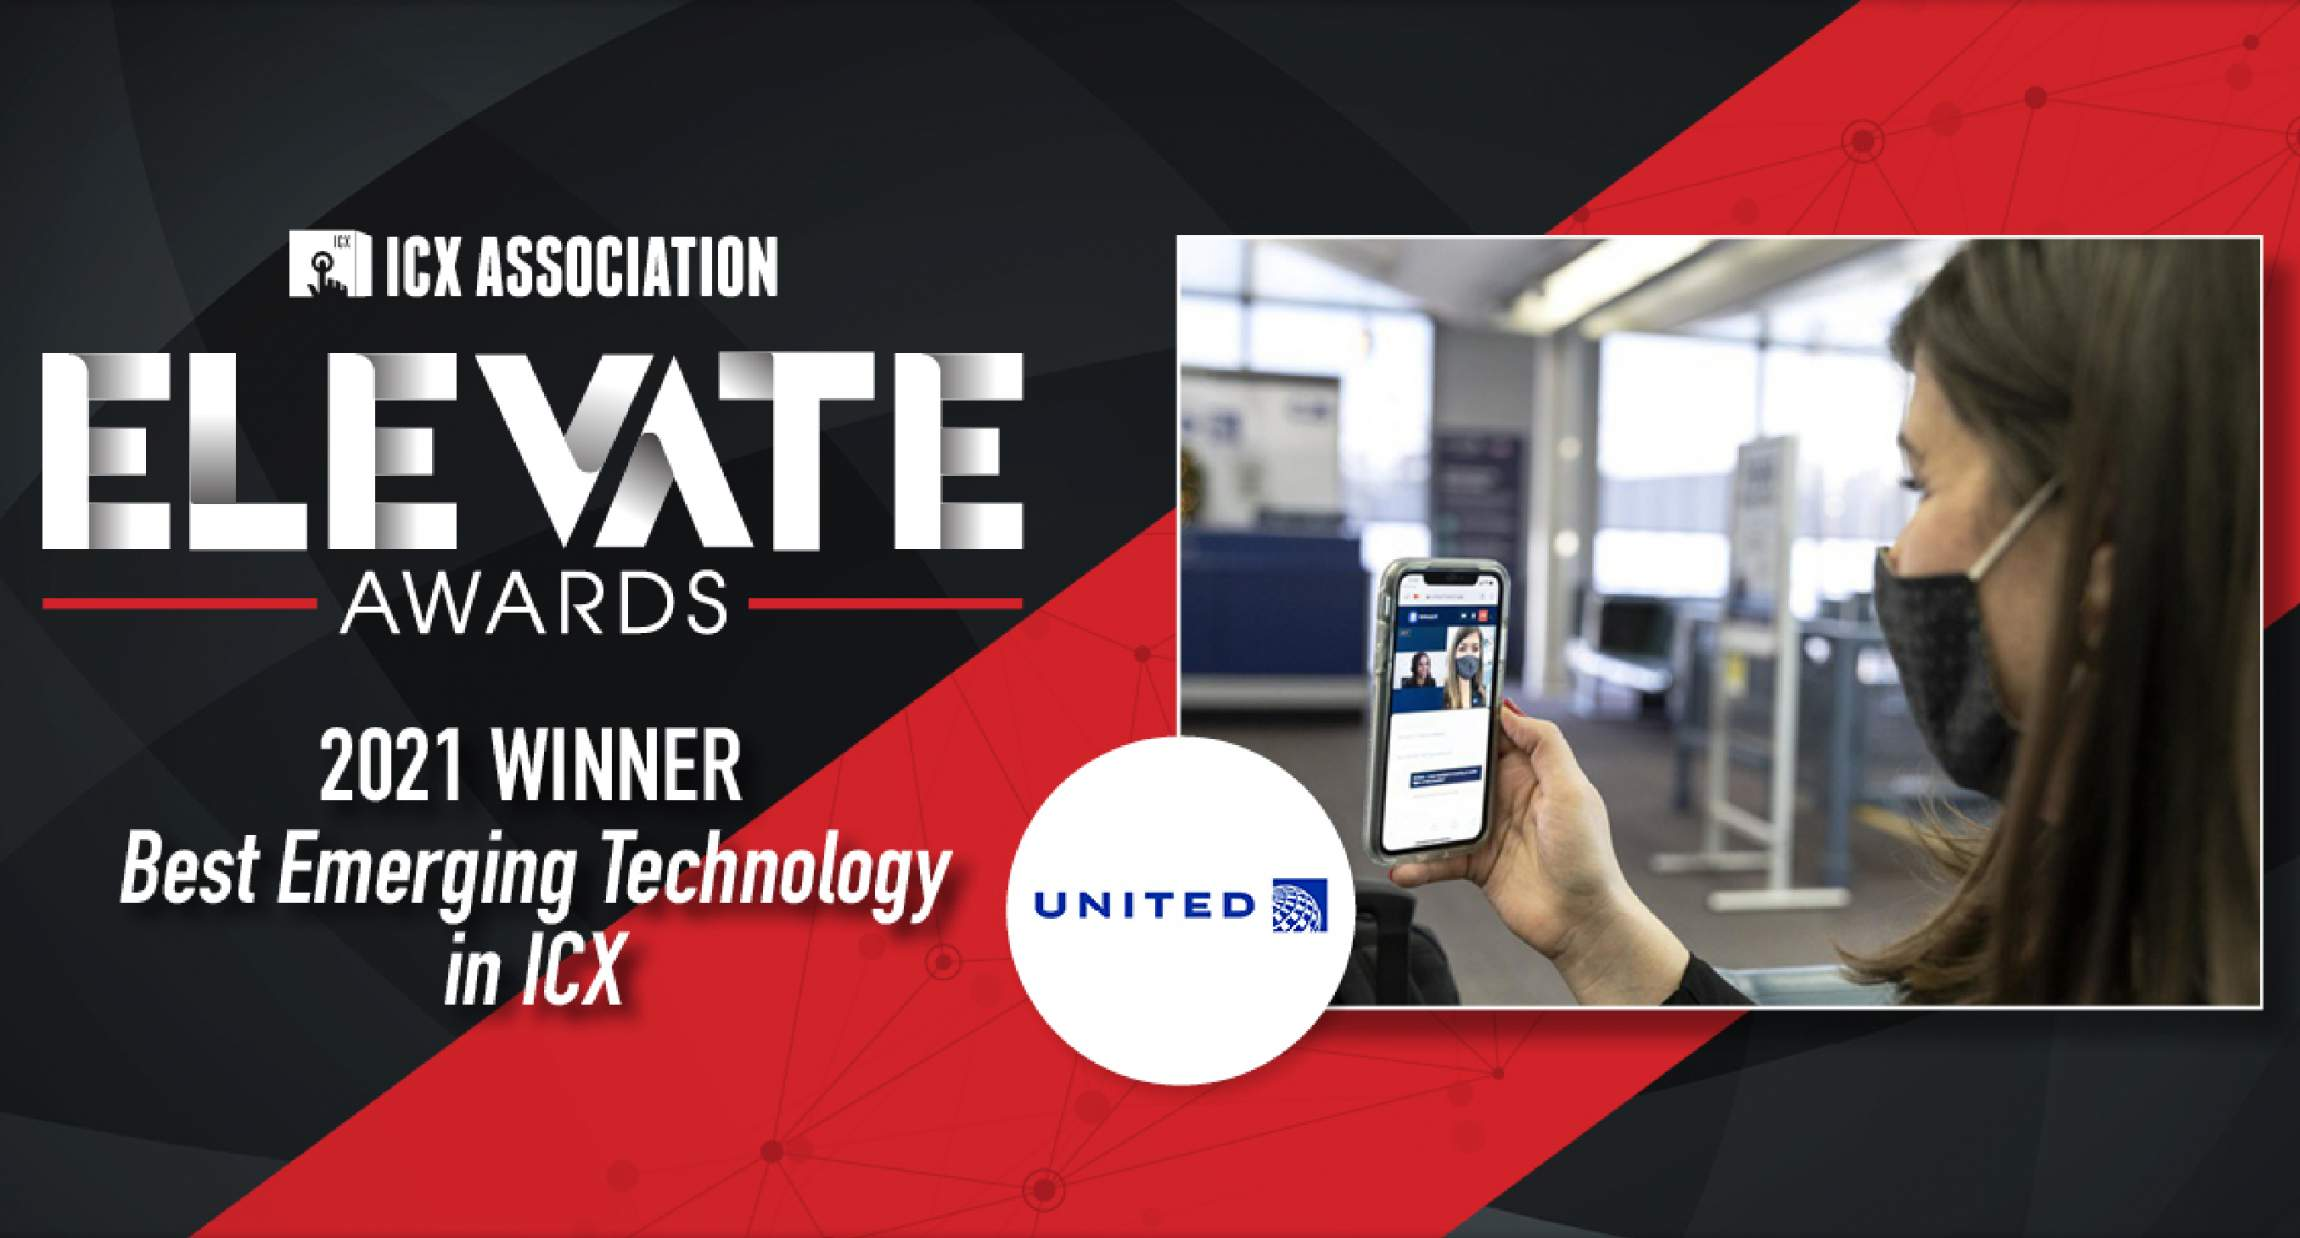 United Airlines Cinches Best Emerging Tech Award For 'Agent On Demand,' Powered By Acquire Technology